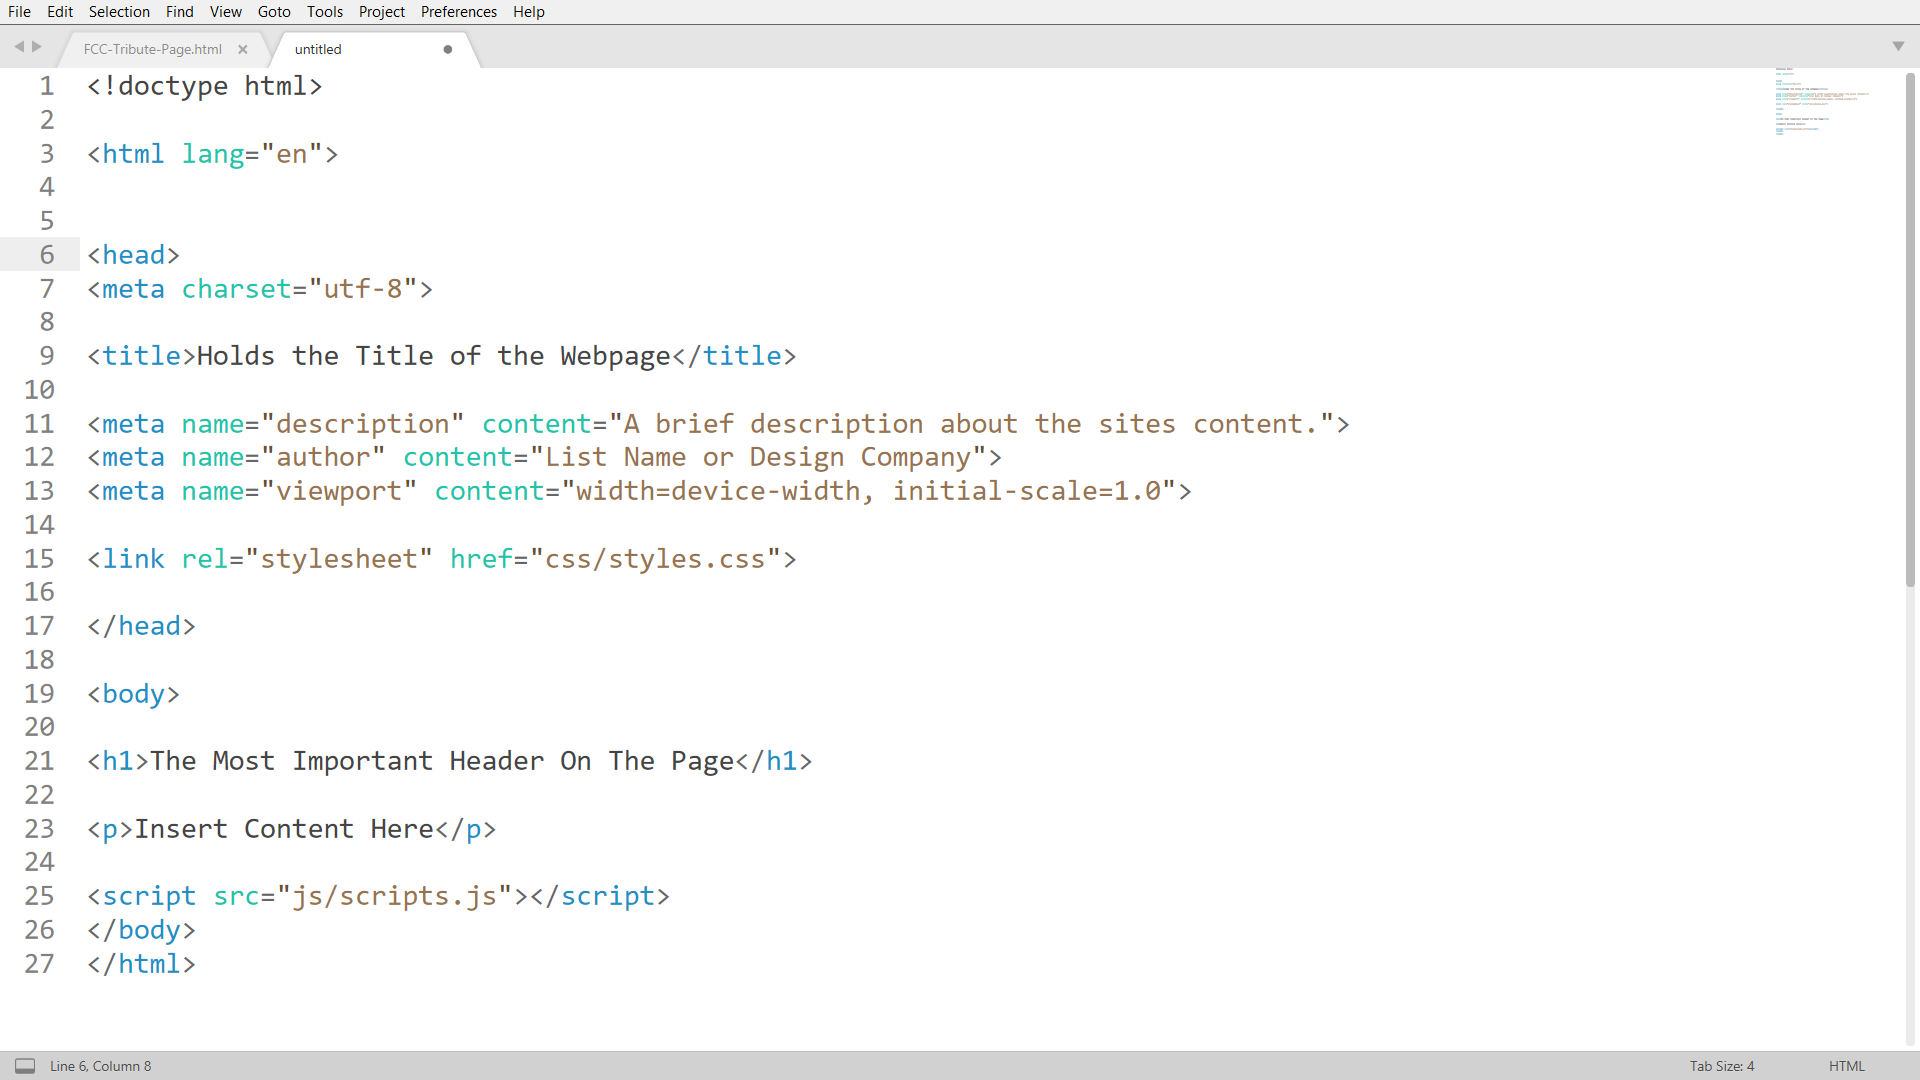 A Sublime editor screen shot of the code discussed in this post. Each line of code is further described in further down the text and a link to this code is provided in the last paragraph.